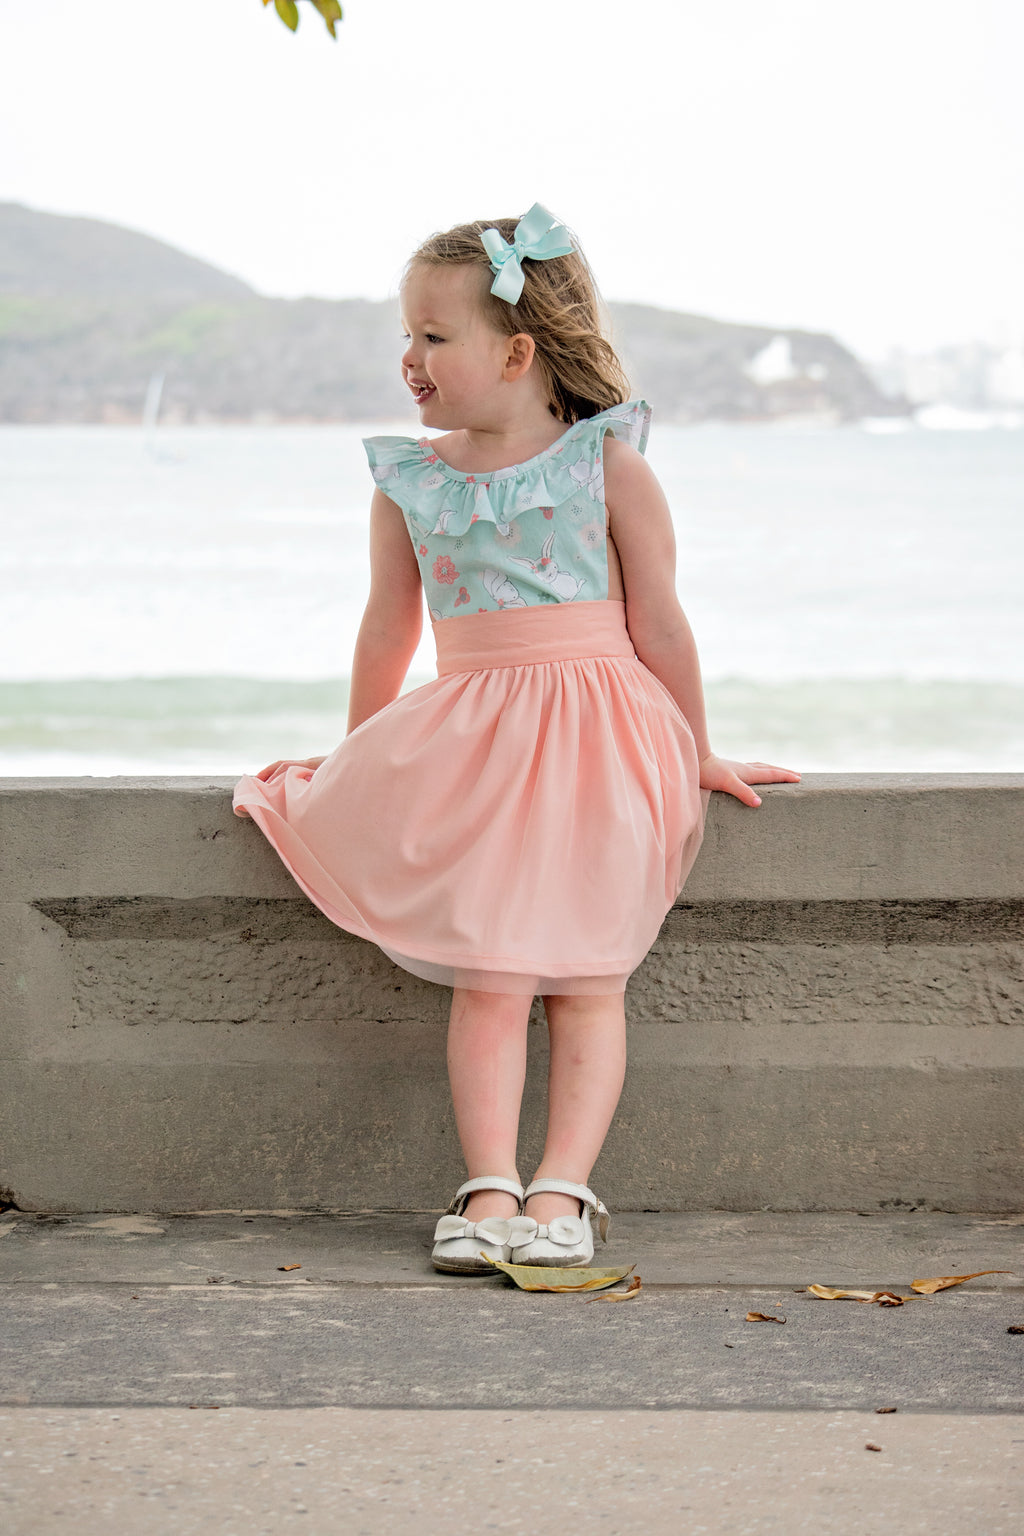 Bunnyhop Mini Stylist Mixup SKIRT/SHORTIES/BLOOMER OPTIONS for girls